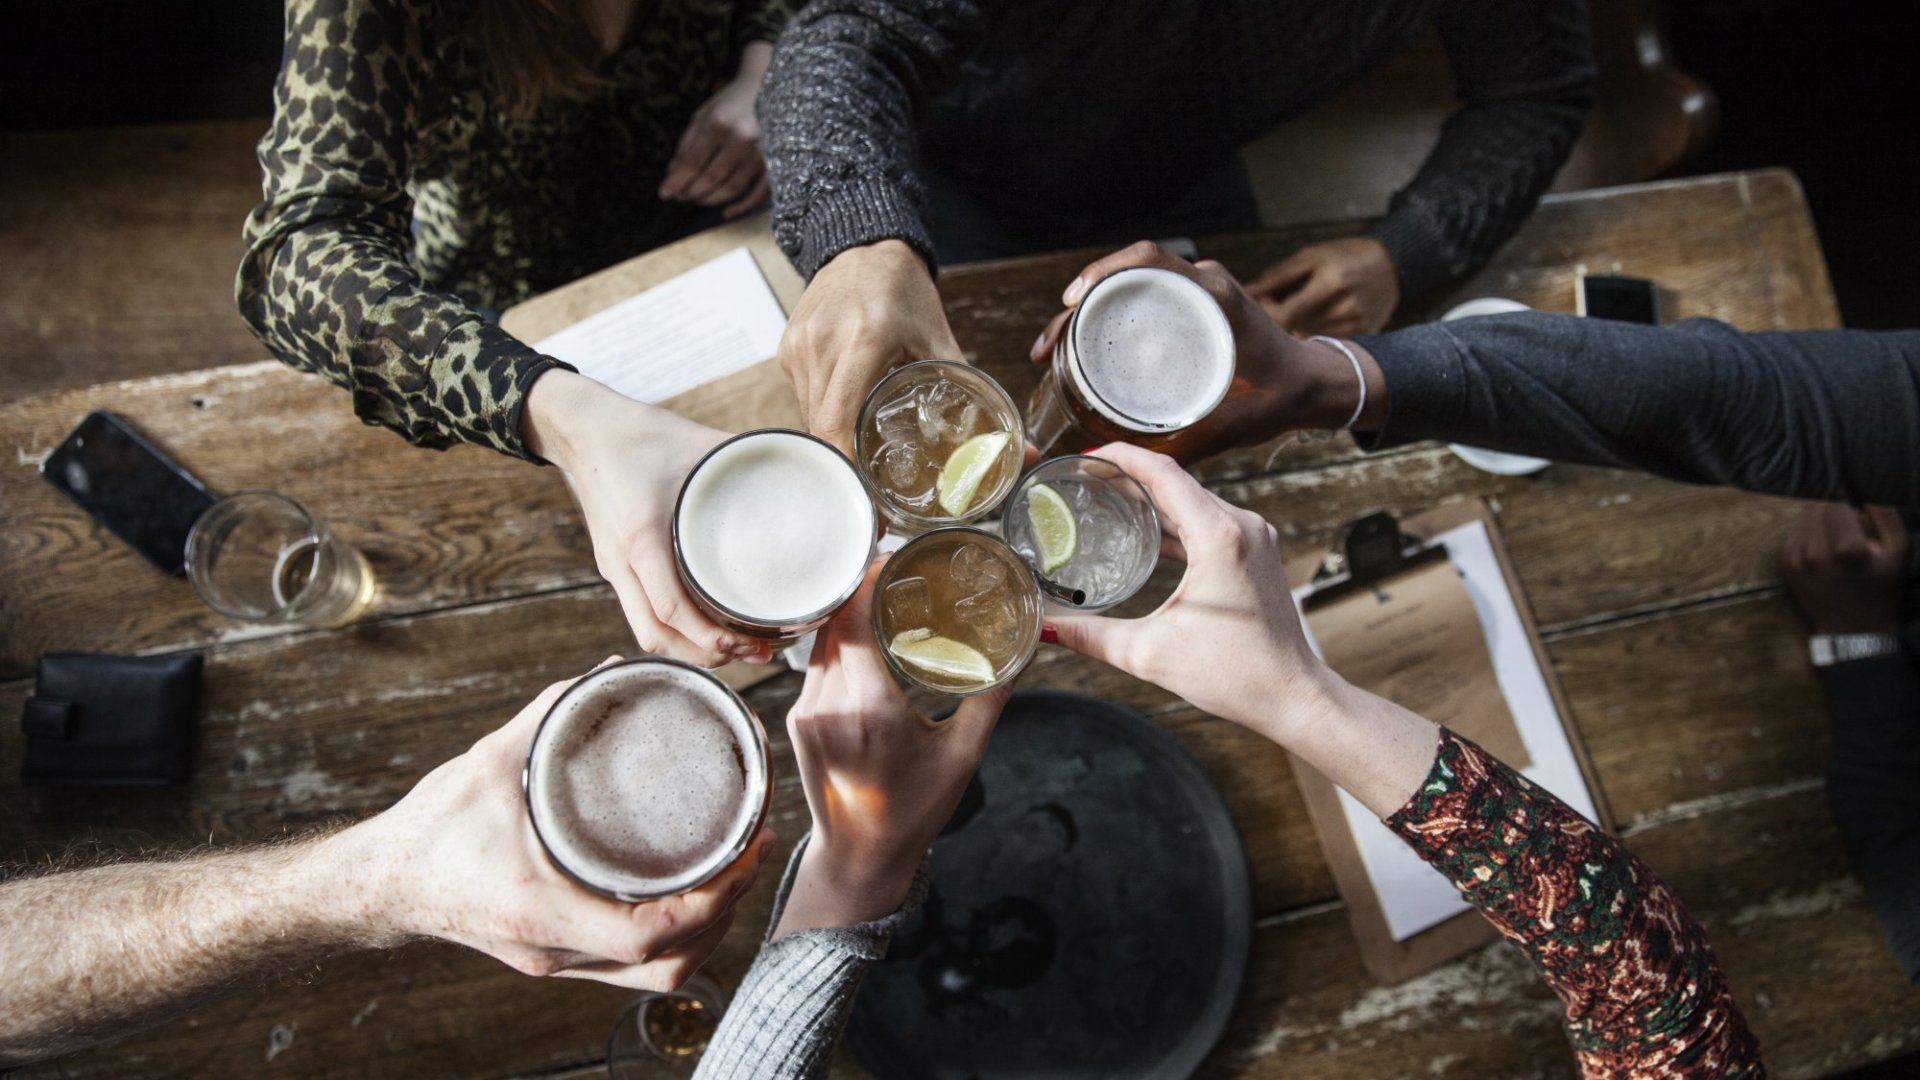 How to Get Better at Speaking a Foreign Language, According to Science: Drink a Beer